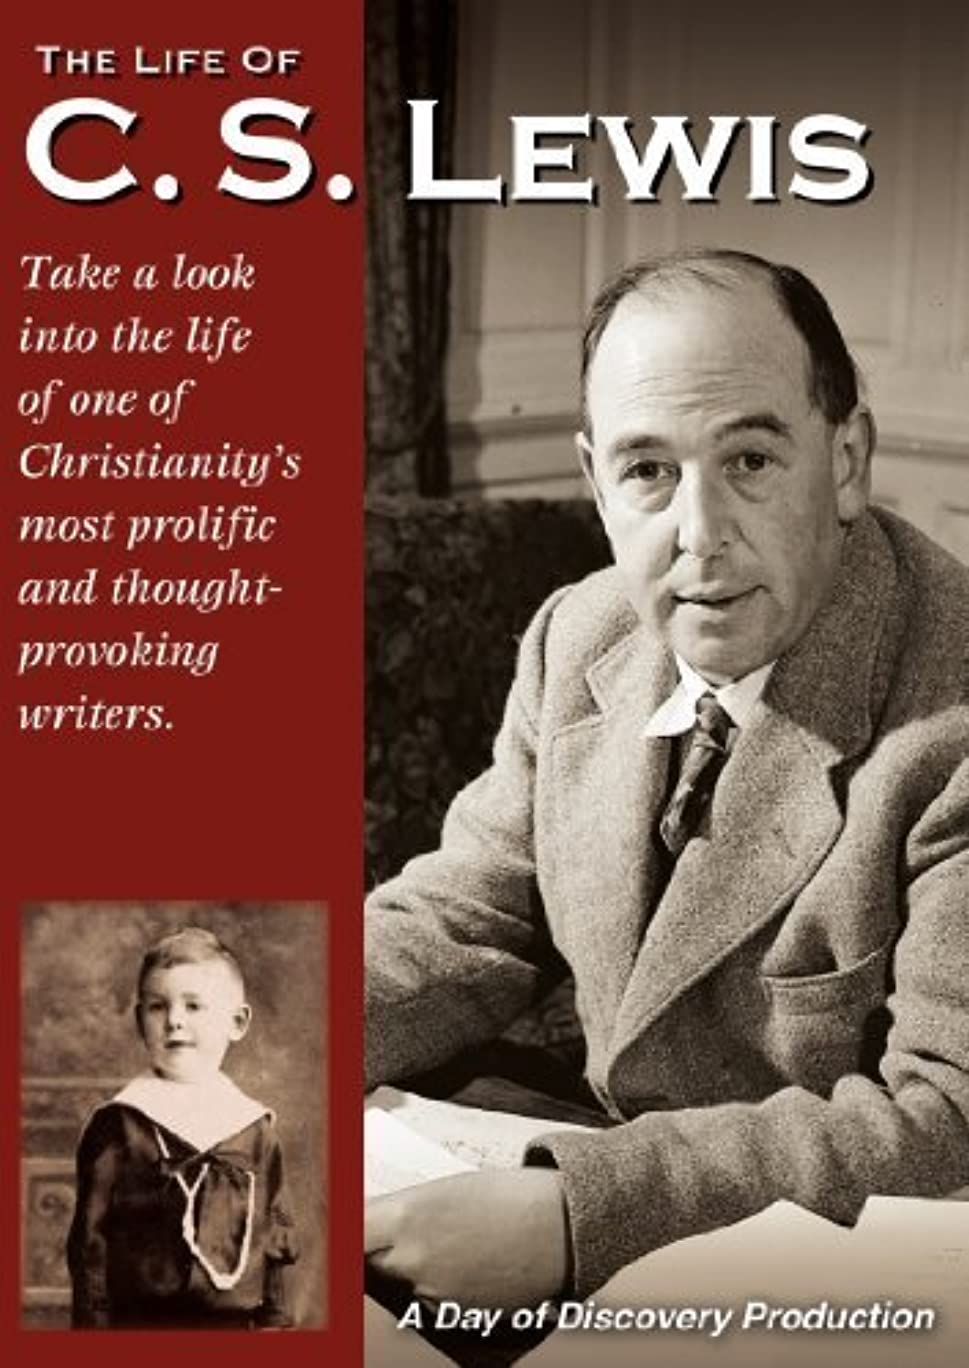 The Life of C. S. Lewis by various